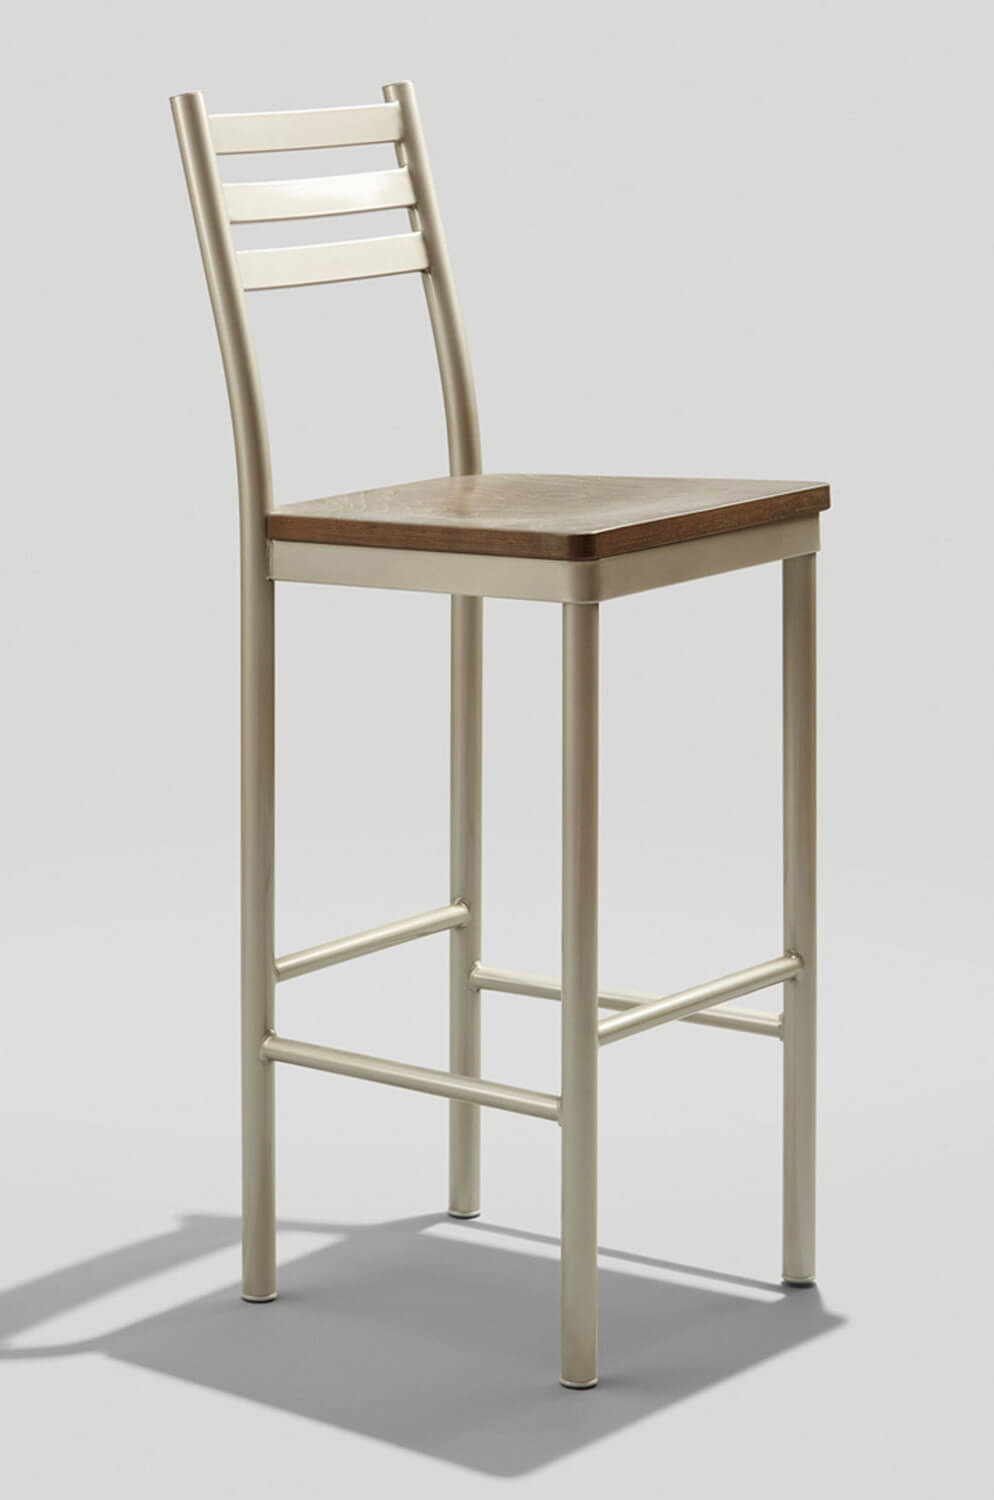 Grand Rapid's Ladder Back Stationary Tall Barstool with Metal Frame and Wood Seat - Commercial Grade